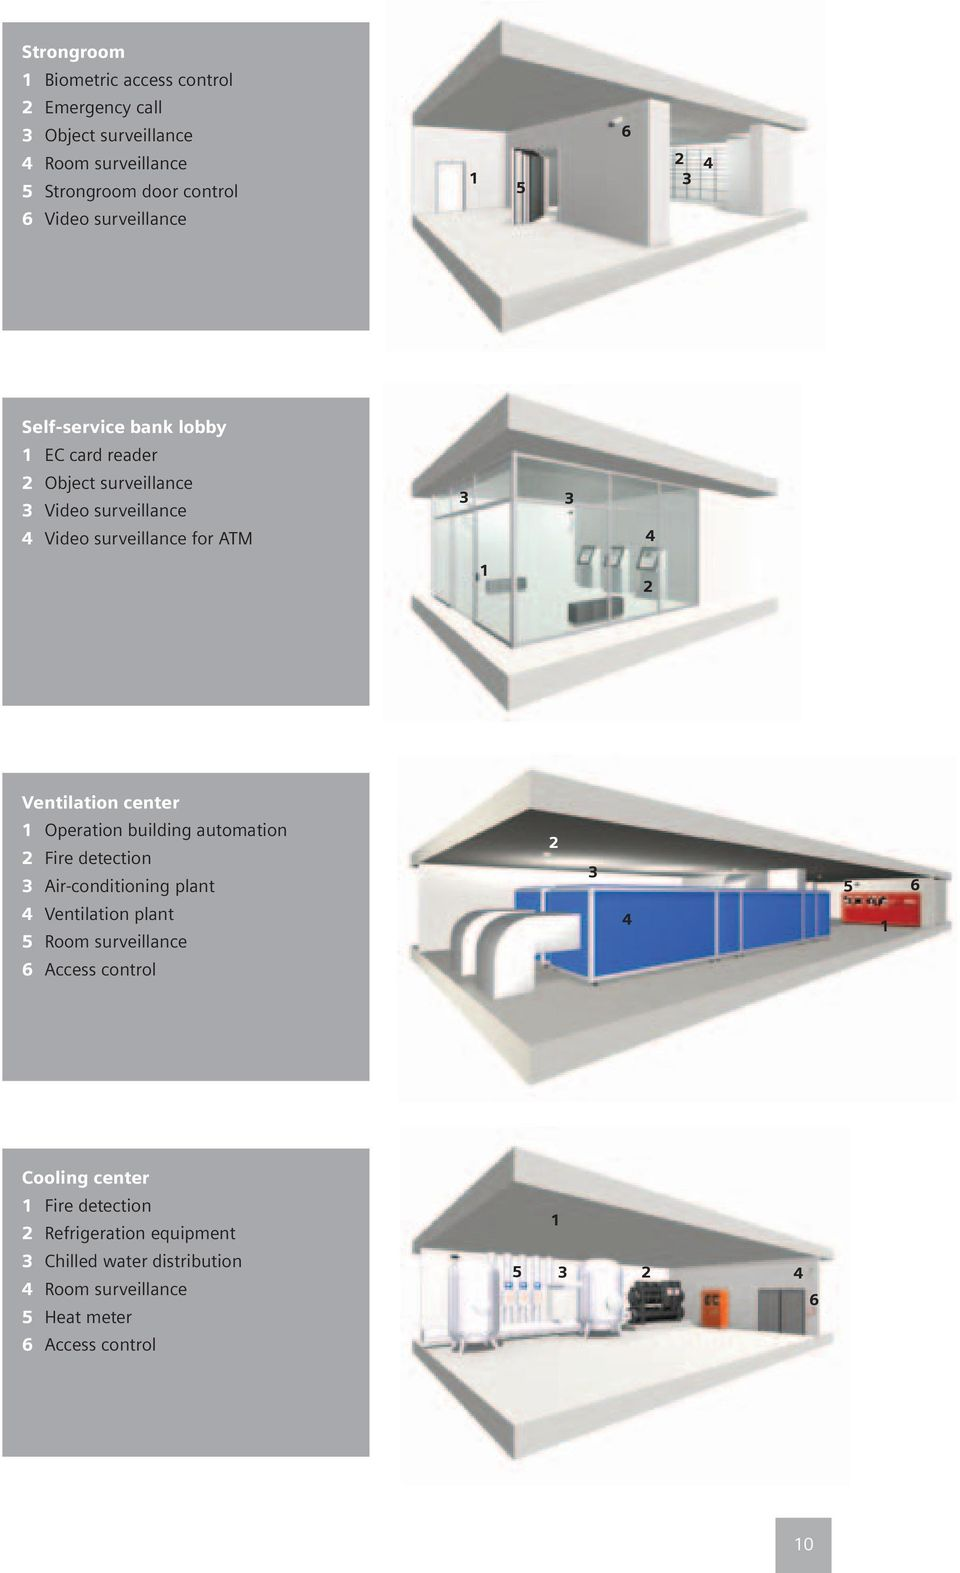 Ventilation center Operation building automation Fire detection Air-conditioning plant Ventilation plant Room surveillance